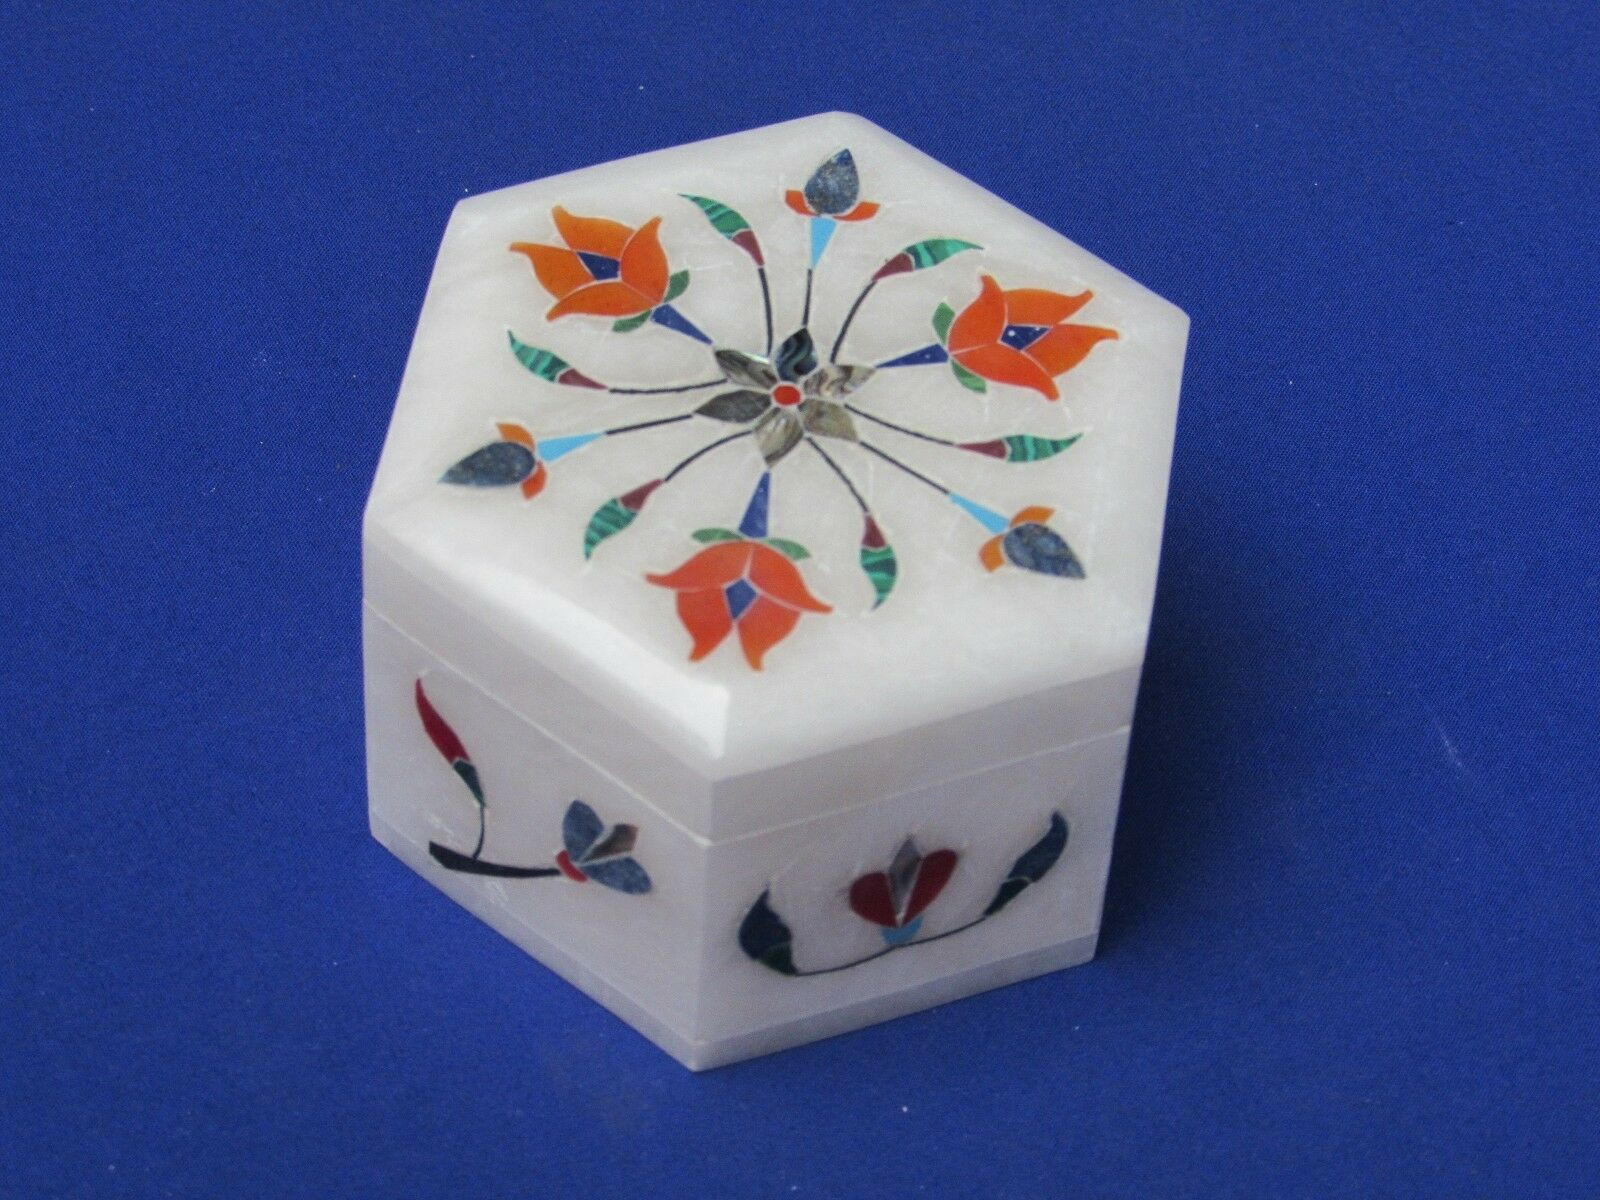 Marble Inlay Small Hexagon Jewelry Box white Inlay Pietra Dura Handmade Crafts